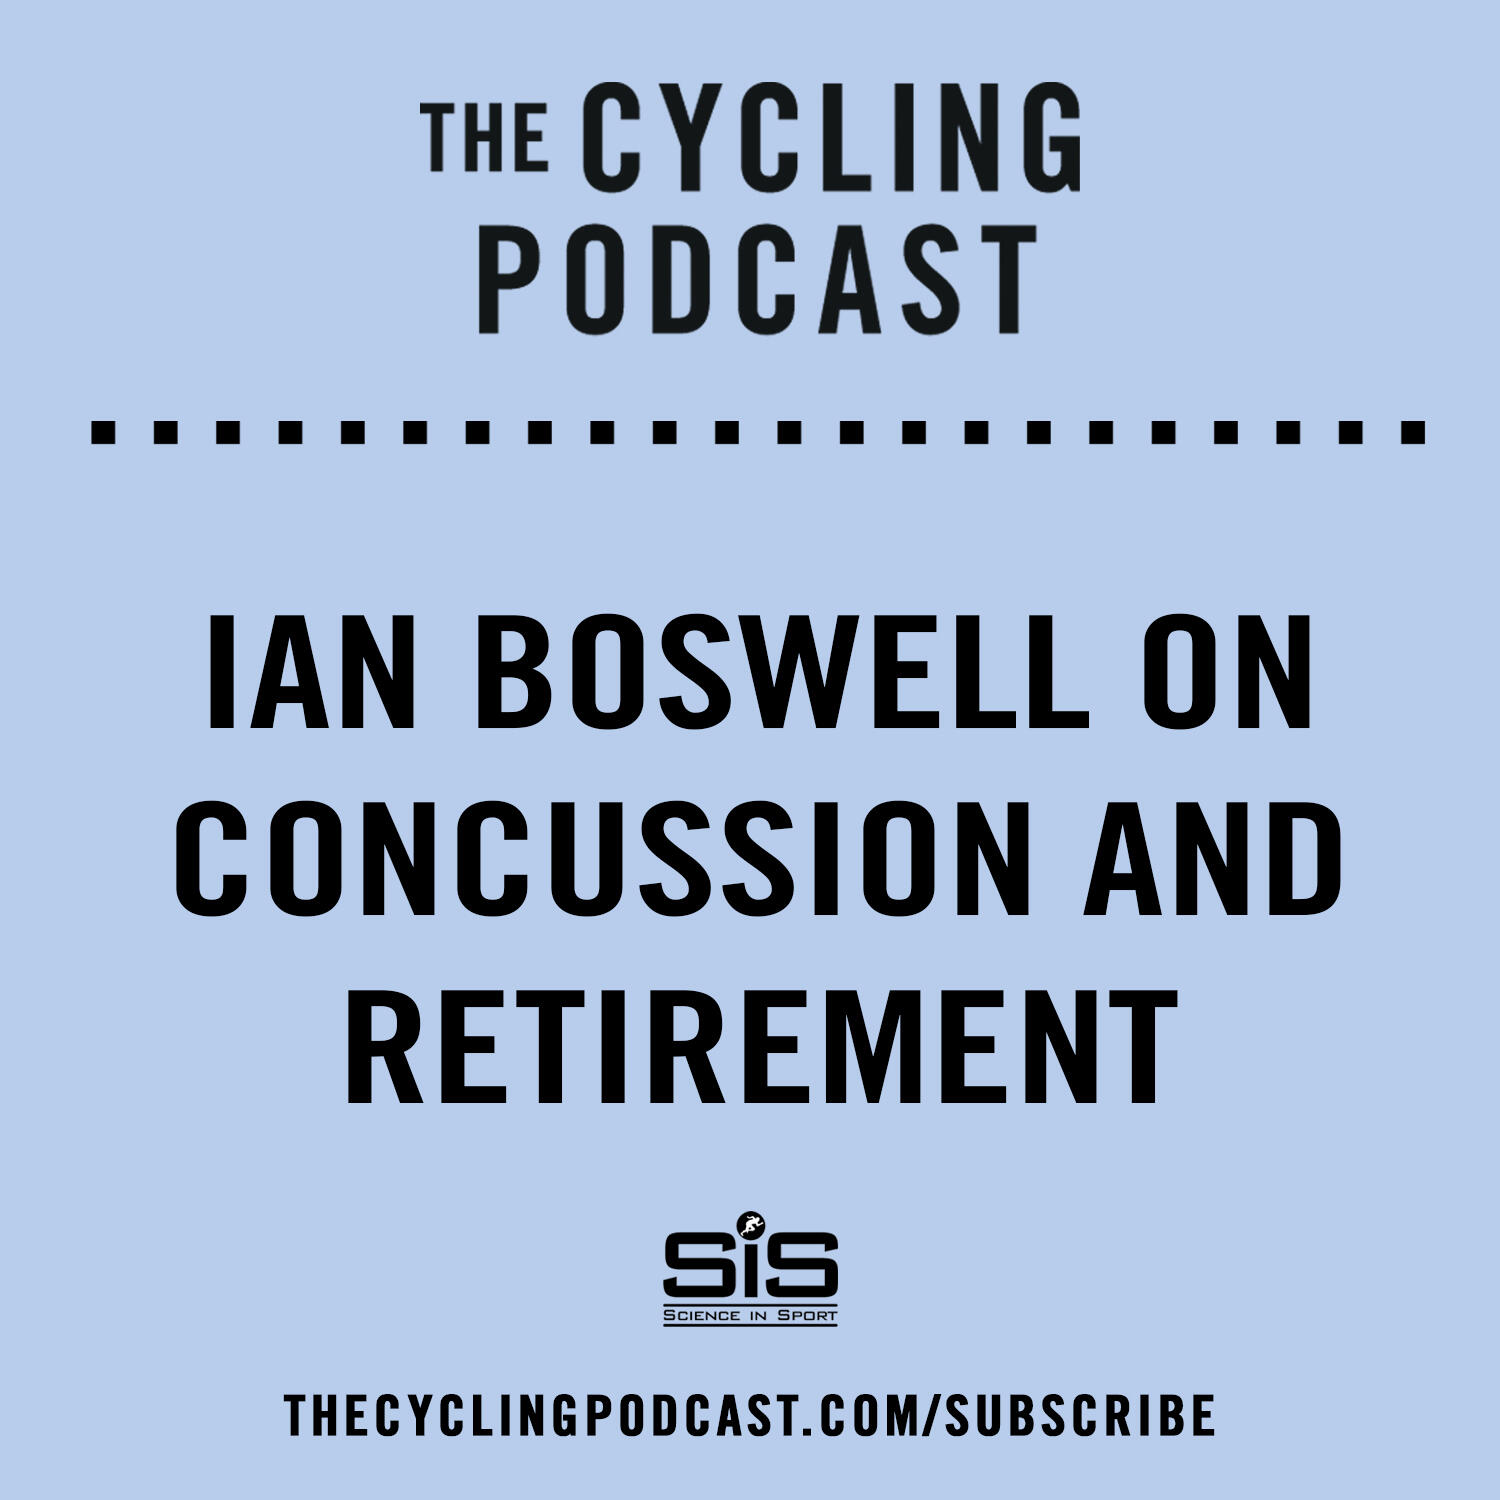 2: Ian Boswell on concussion and retirement